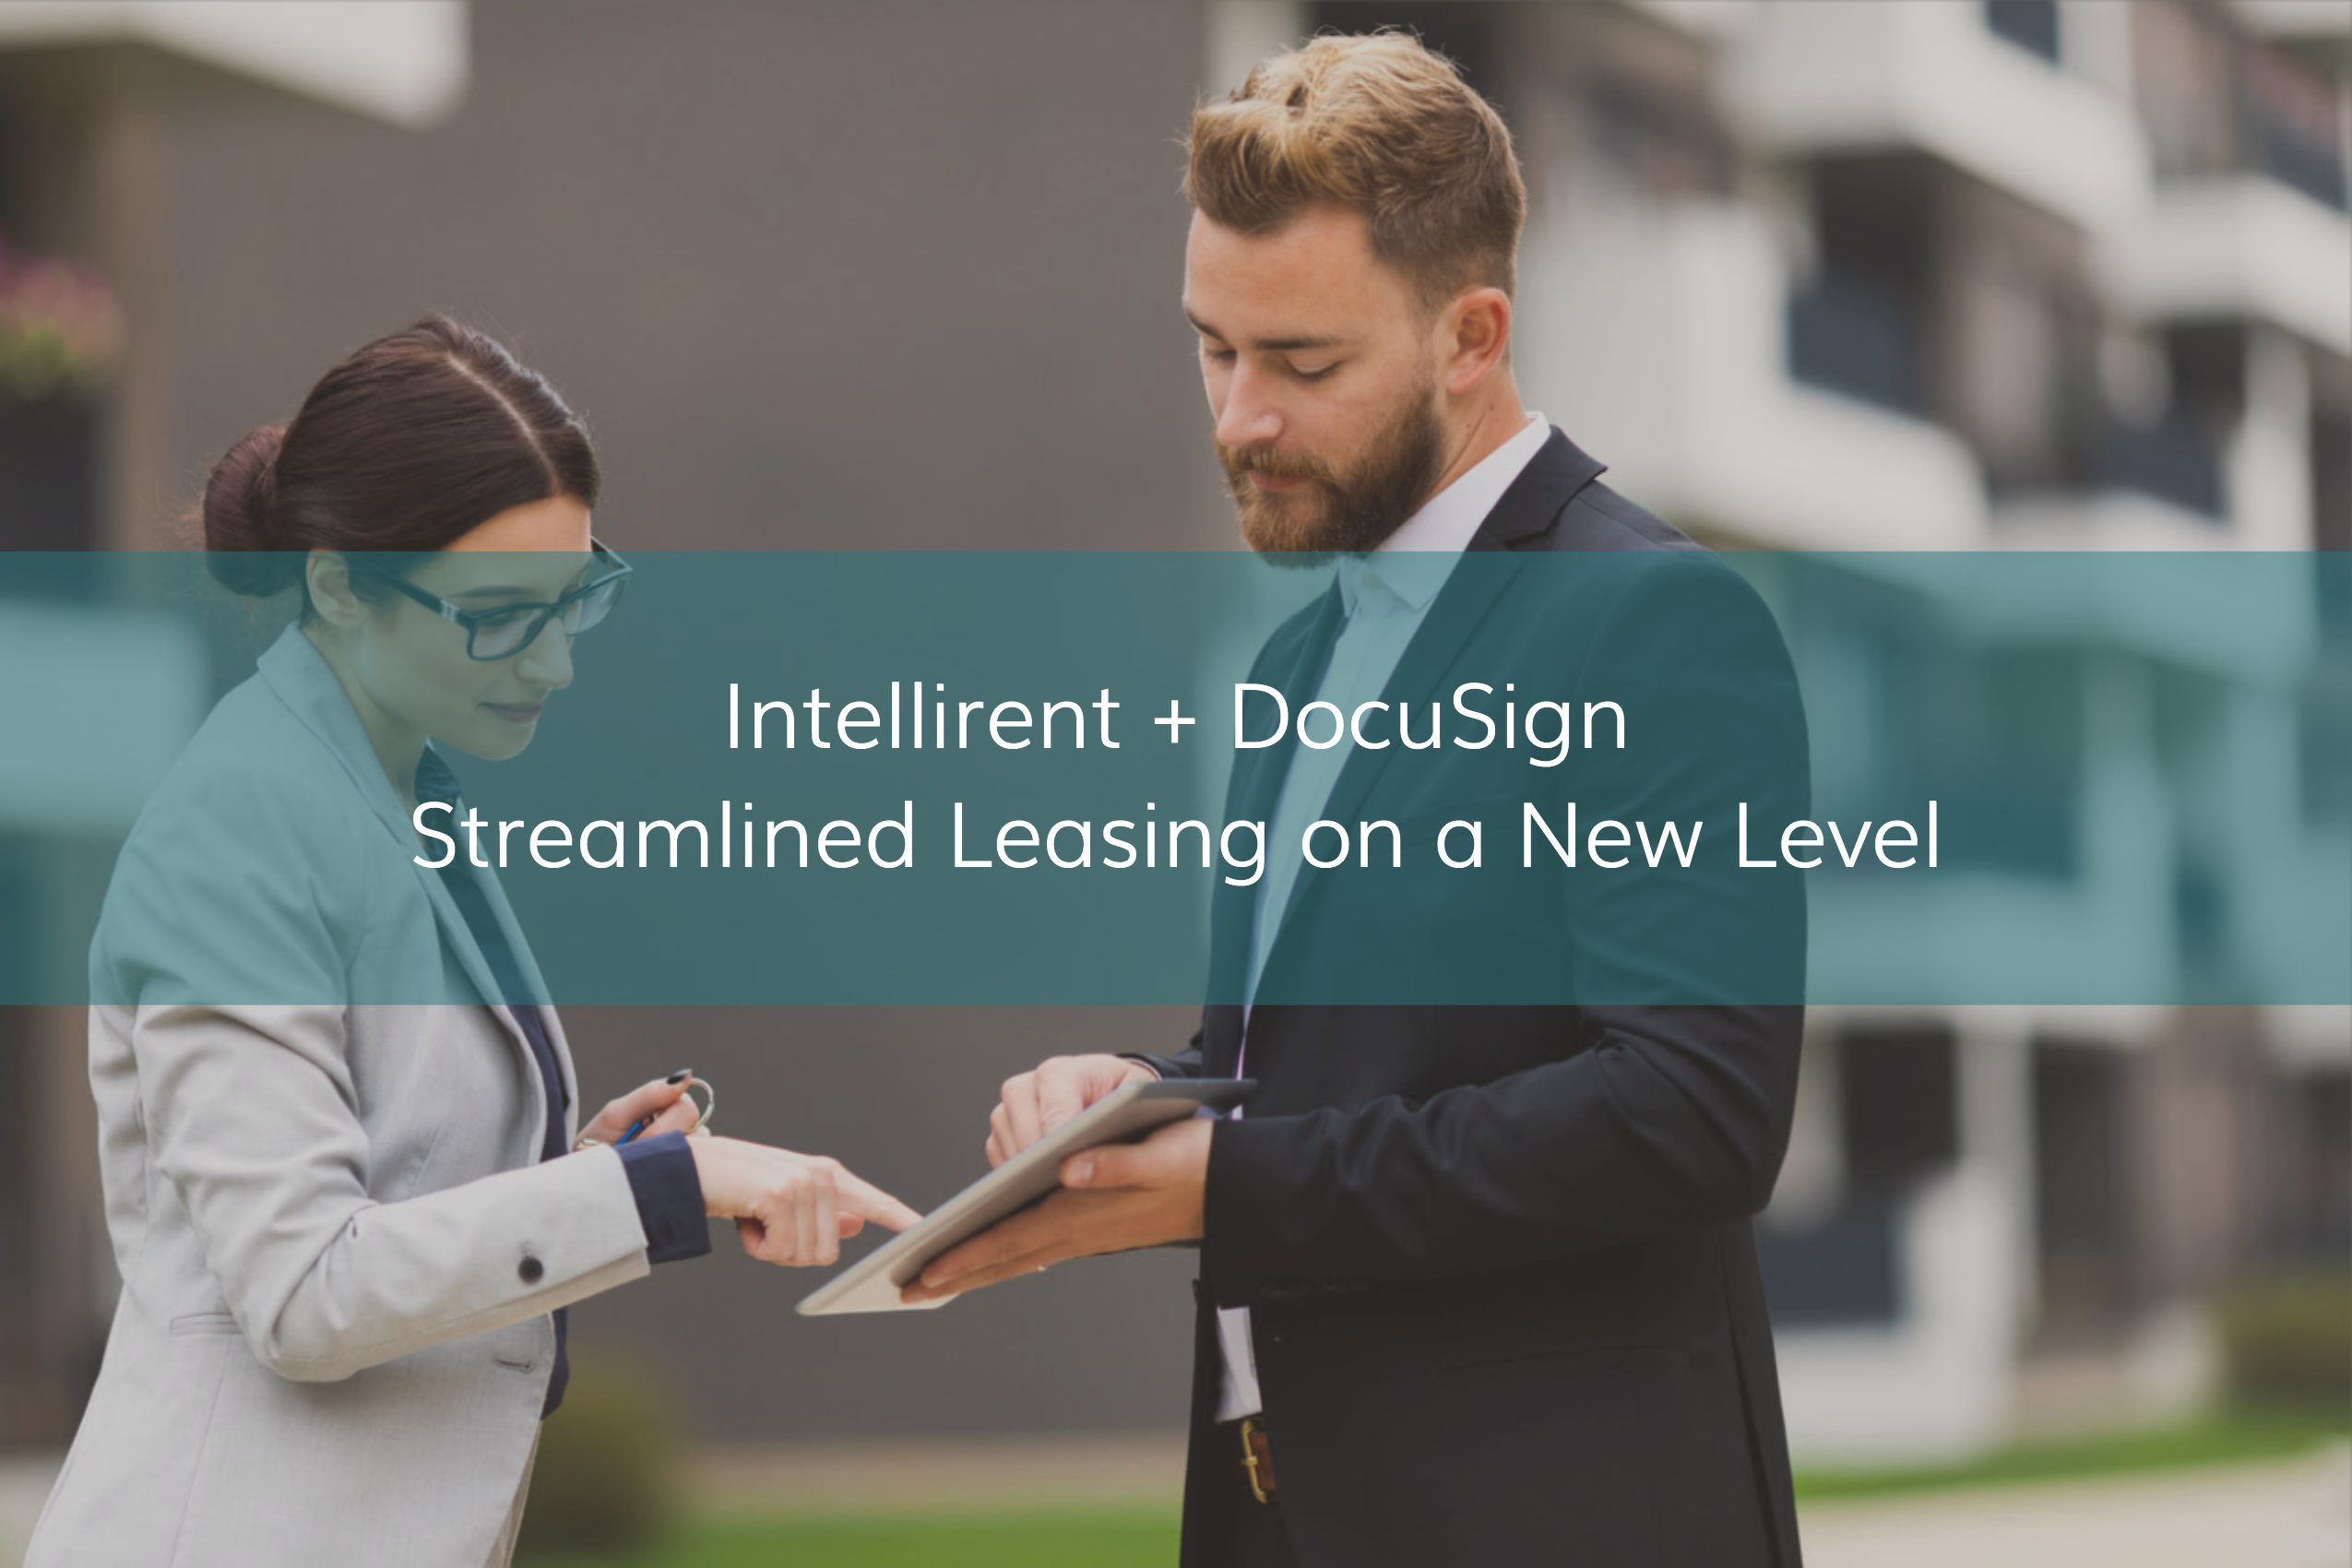 Intellirent + DocuSign blog